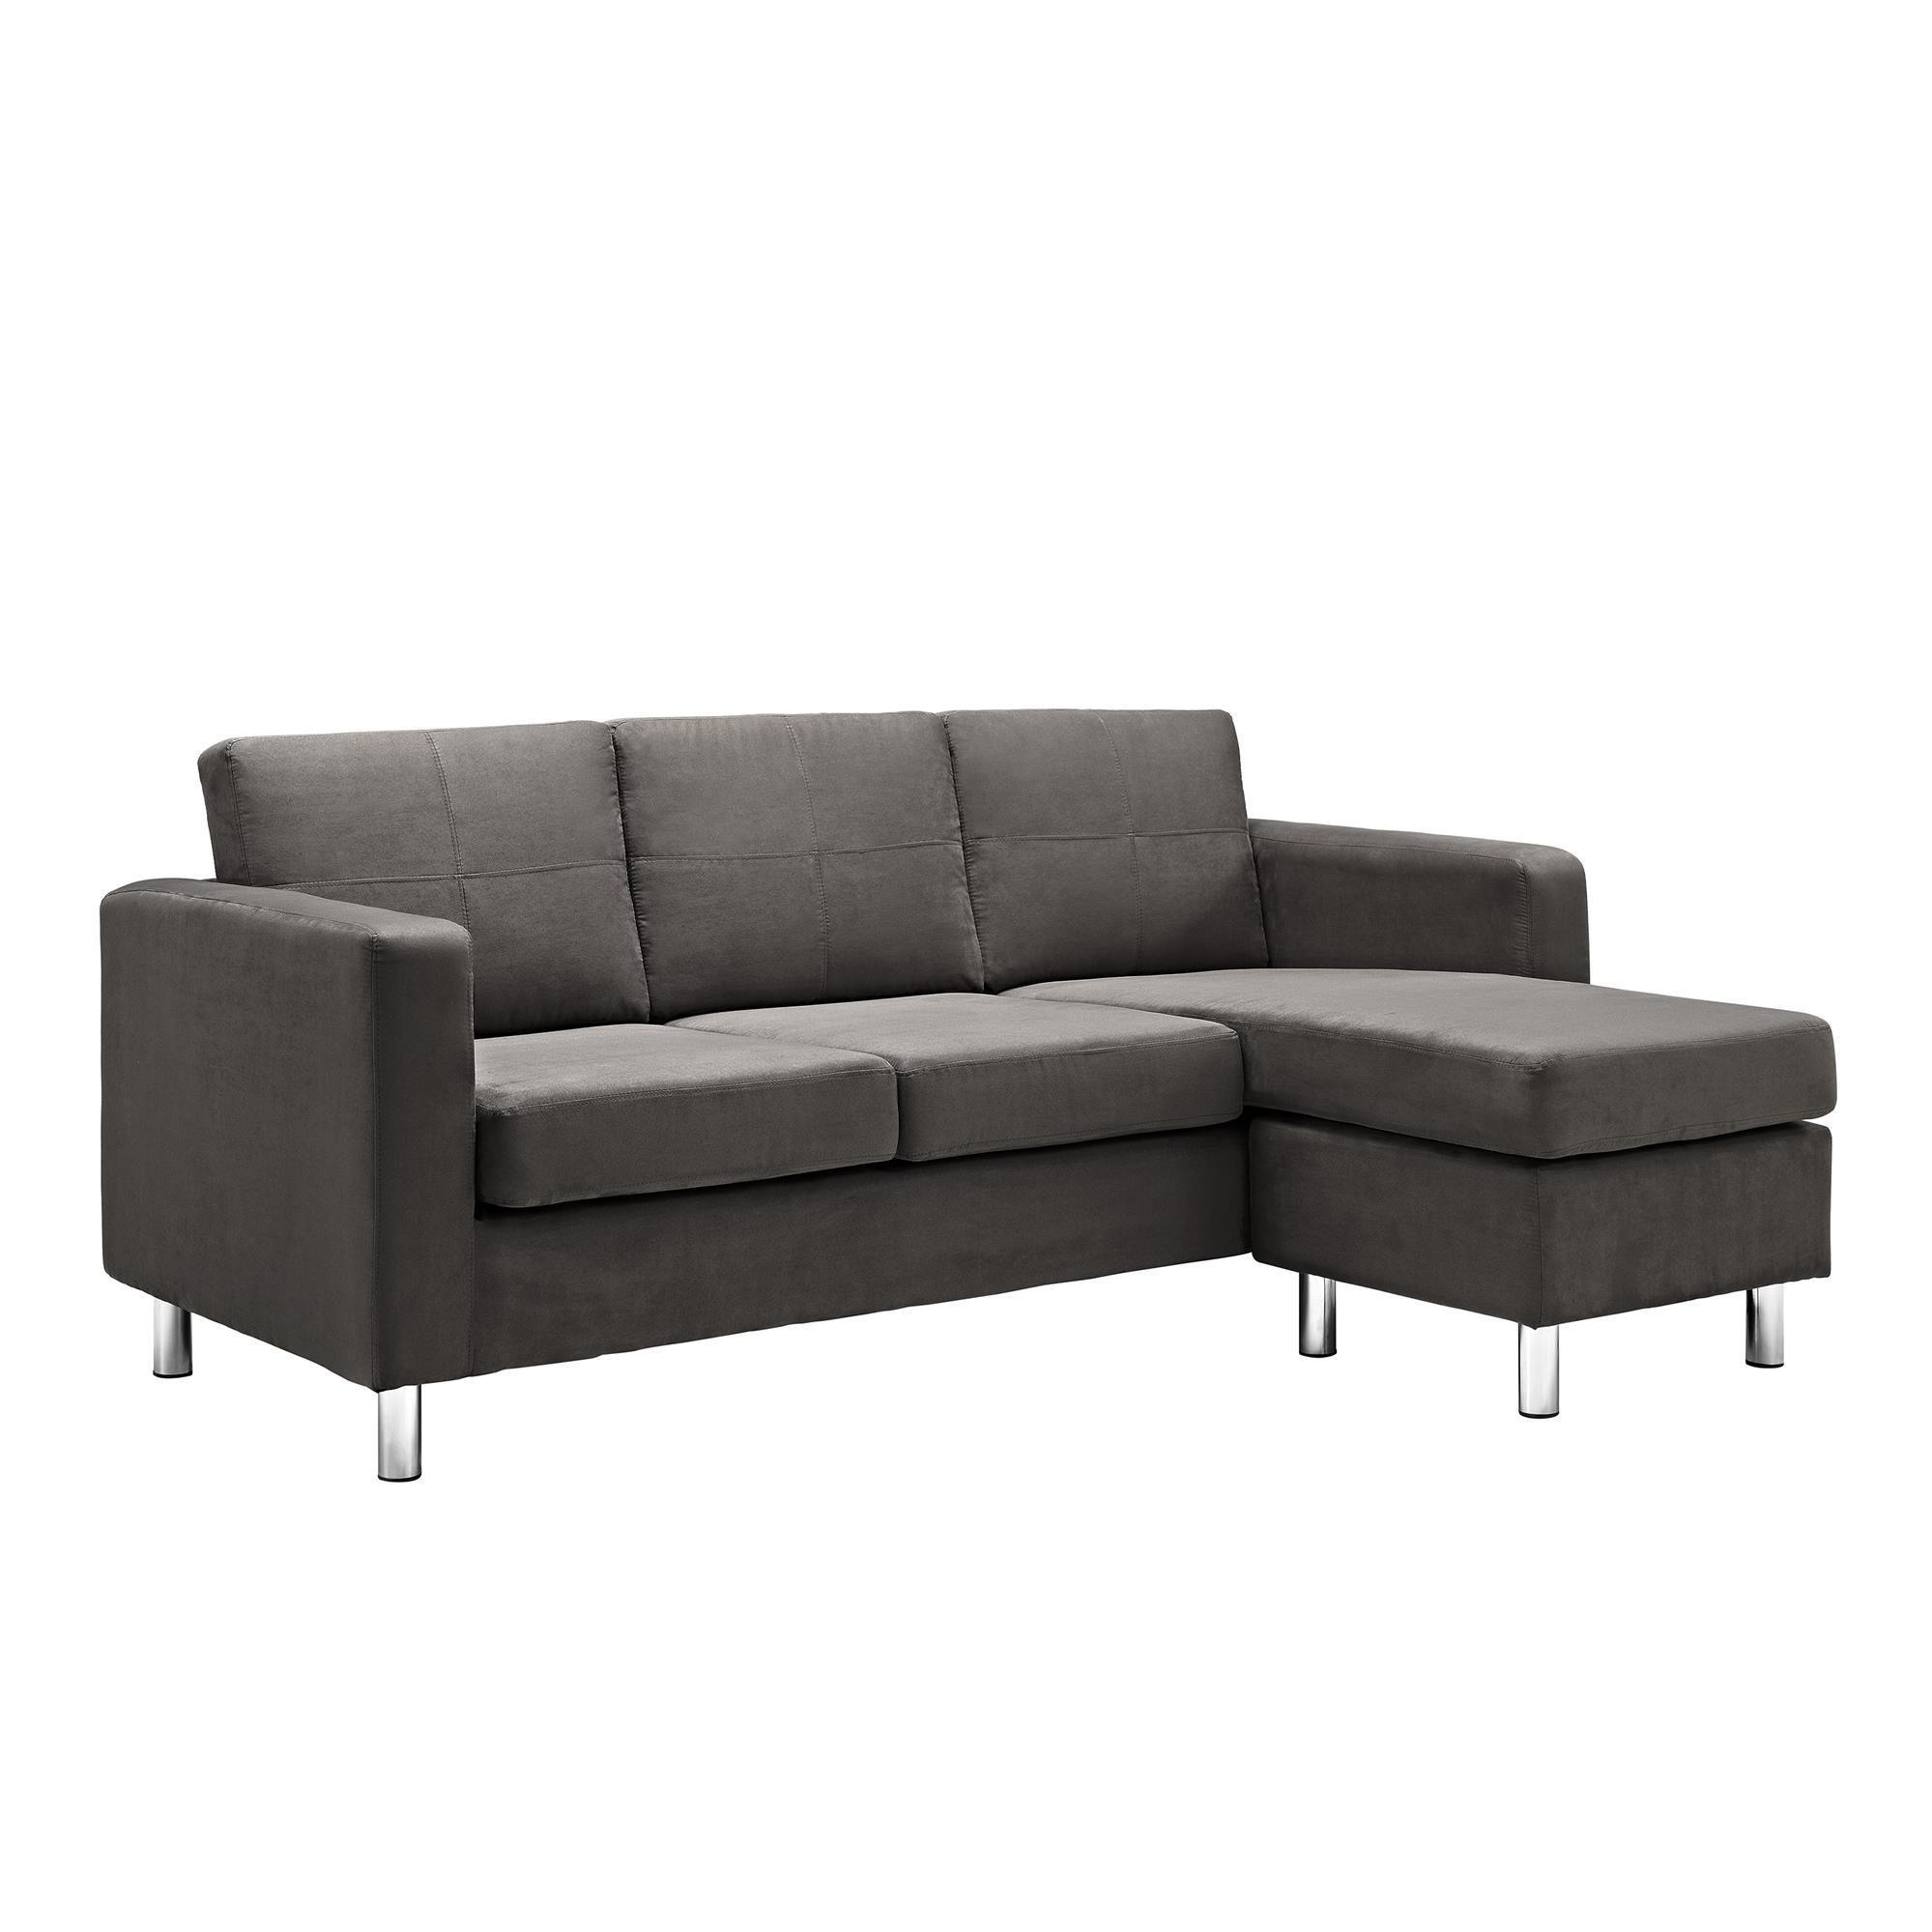 recliners large oversized light chaise microfiber sofas with couch sectional sofa size of gray grey